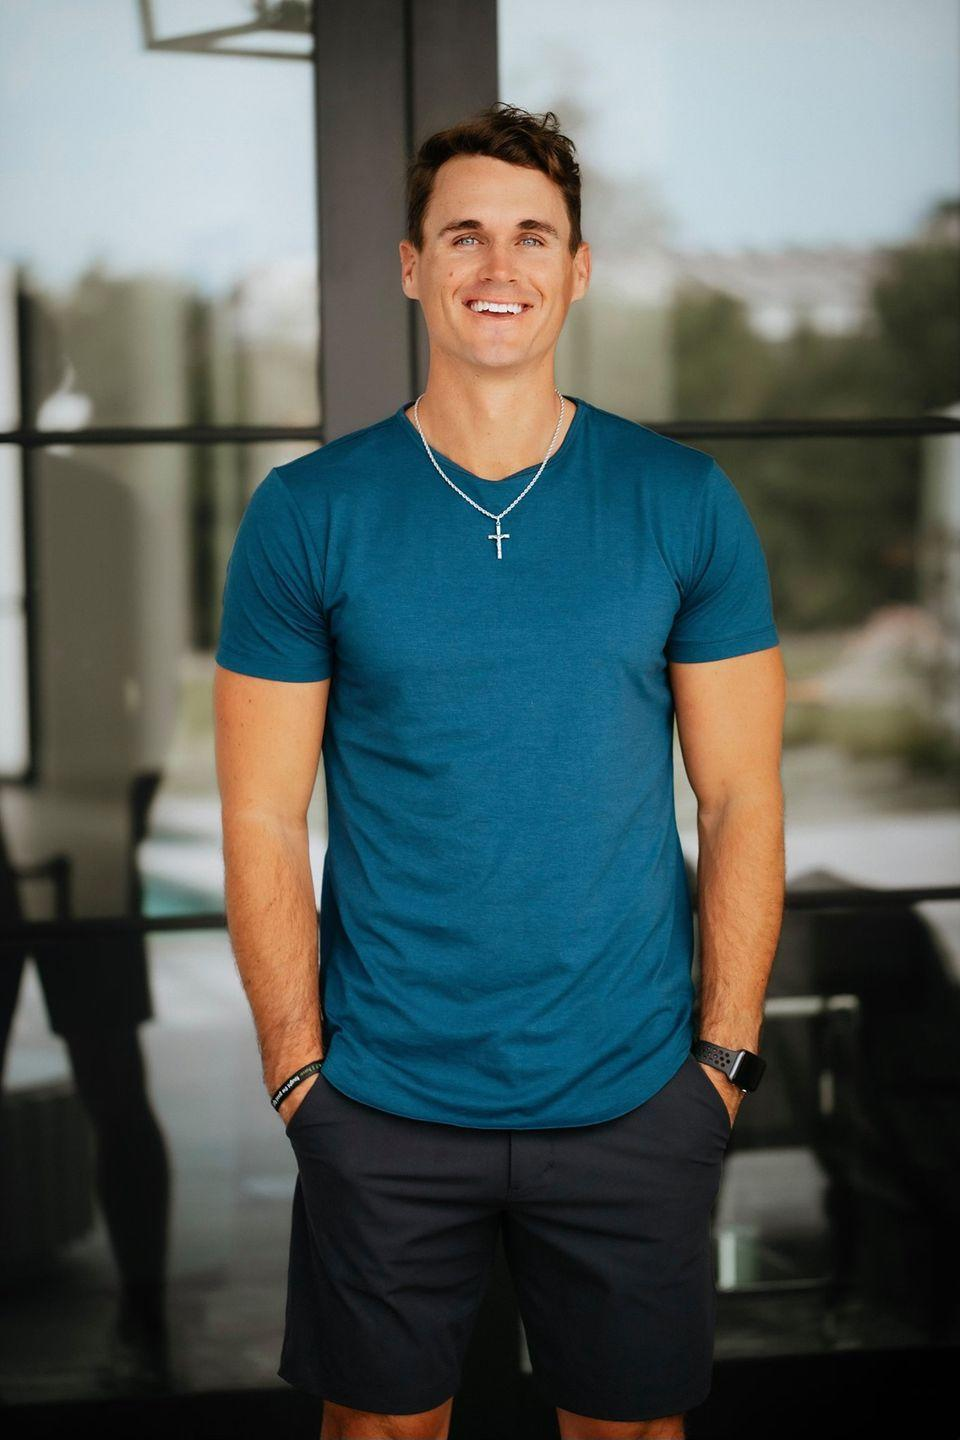 """<p>Mike didn't have to travel far to the <em>Bachelorette</em> set, he's from Arizona. TBD what surprises he may bring. Mike is a former minor league baseball player who now works as a personal trainer.</p><p><strong>Age: 31</strong></p><p><strong>Hometown: Surprise, AZ</strong></p><p><strong>Instagram: <a href=""""https://www.instagram.com/mikeyplaneta/"""" rel=""""nofollow noopener"""" target=""""_blank"""" data-ylk=""""slk:@mikeyplaneta"""" class=""""link rapid-noclick-resp"""">@mikeyplaneta</a></strong></p>"""